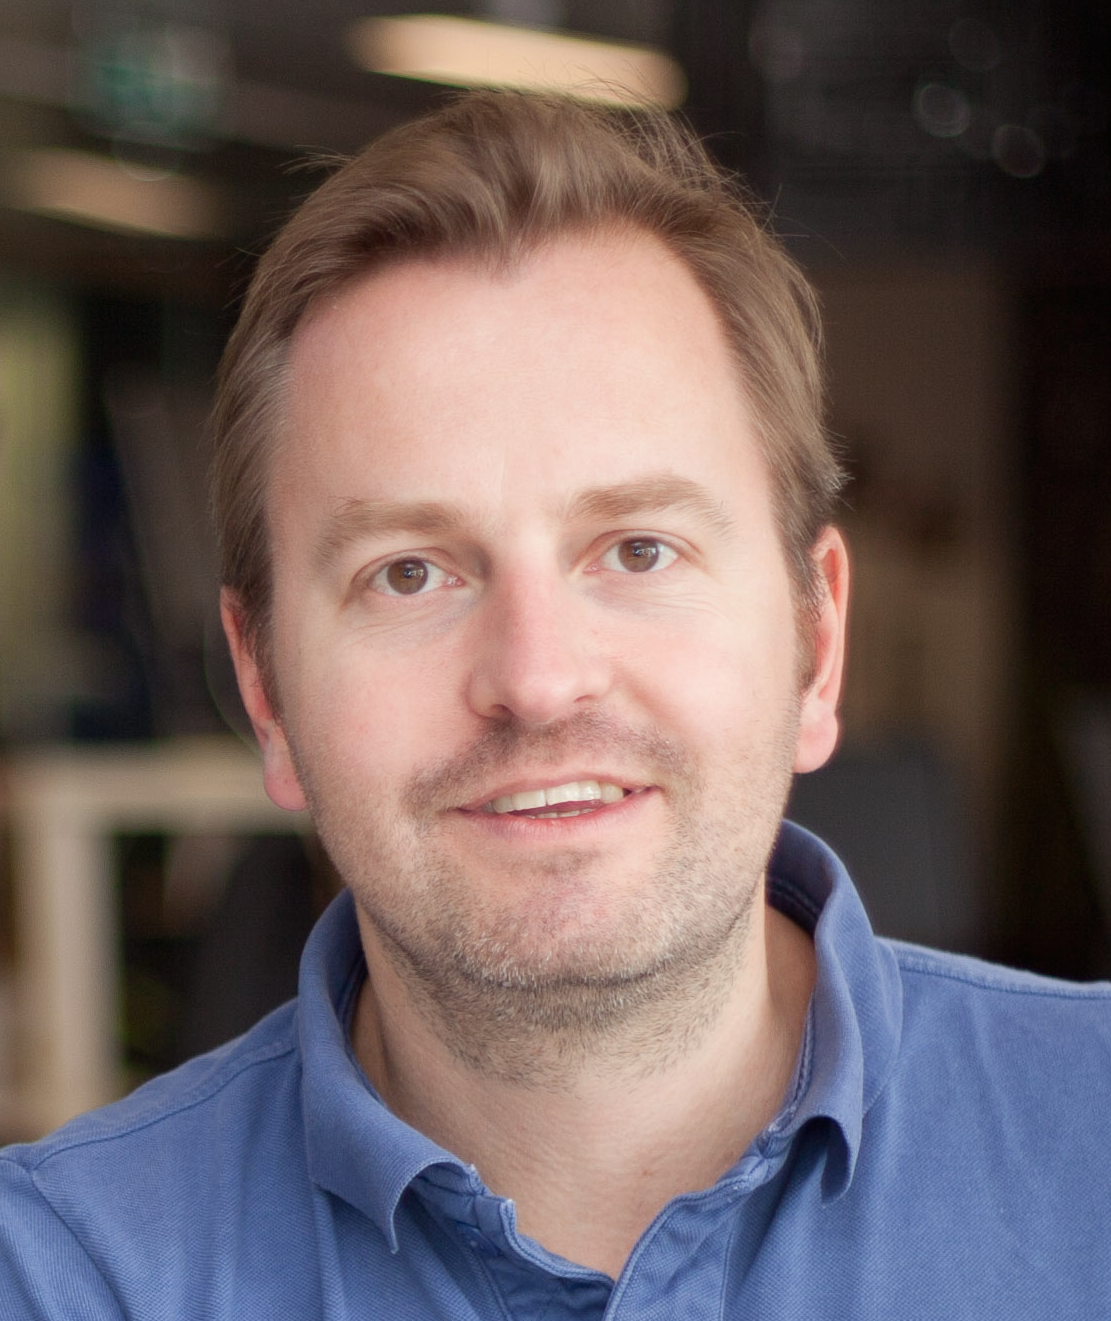 Co-founder and CEO of Busuu, Bernhard Niesner